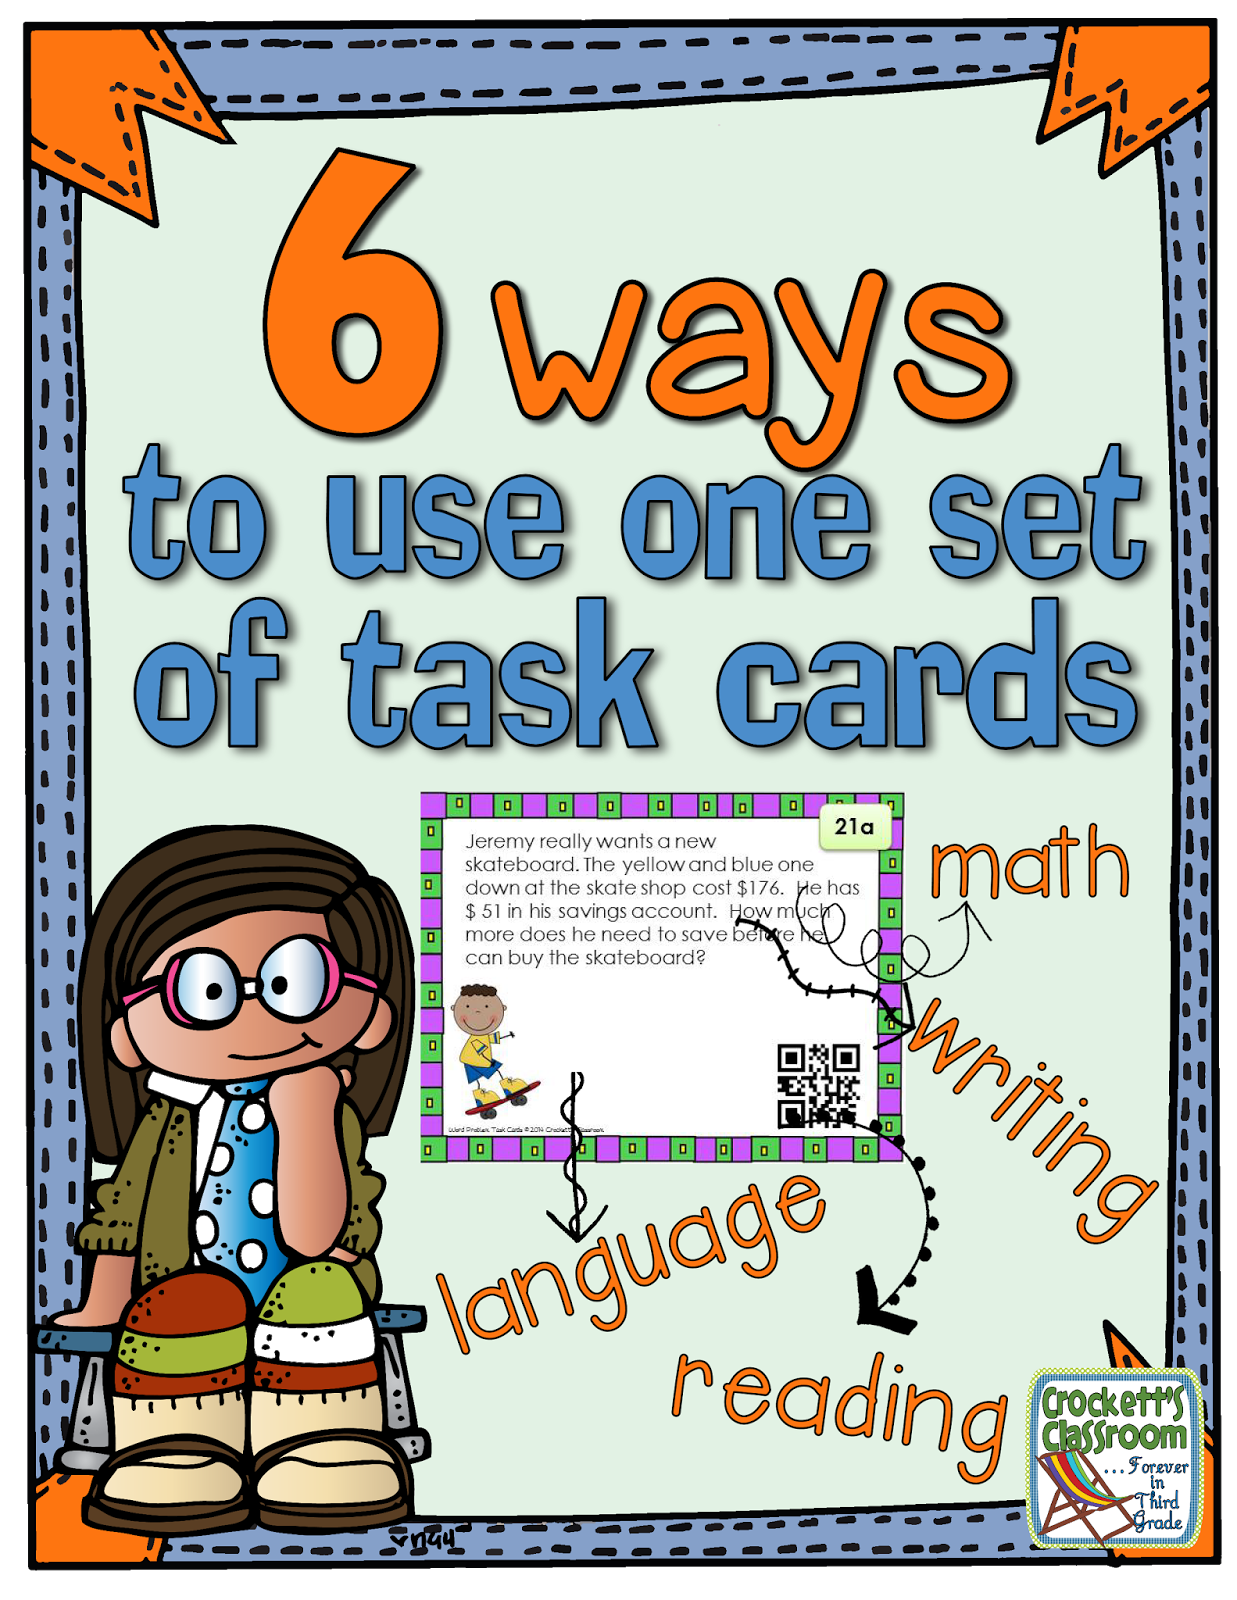 Get more from your task cards.  Learn how to use one set of task cards for math, reading, language, writing and other fun activities.